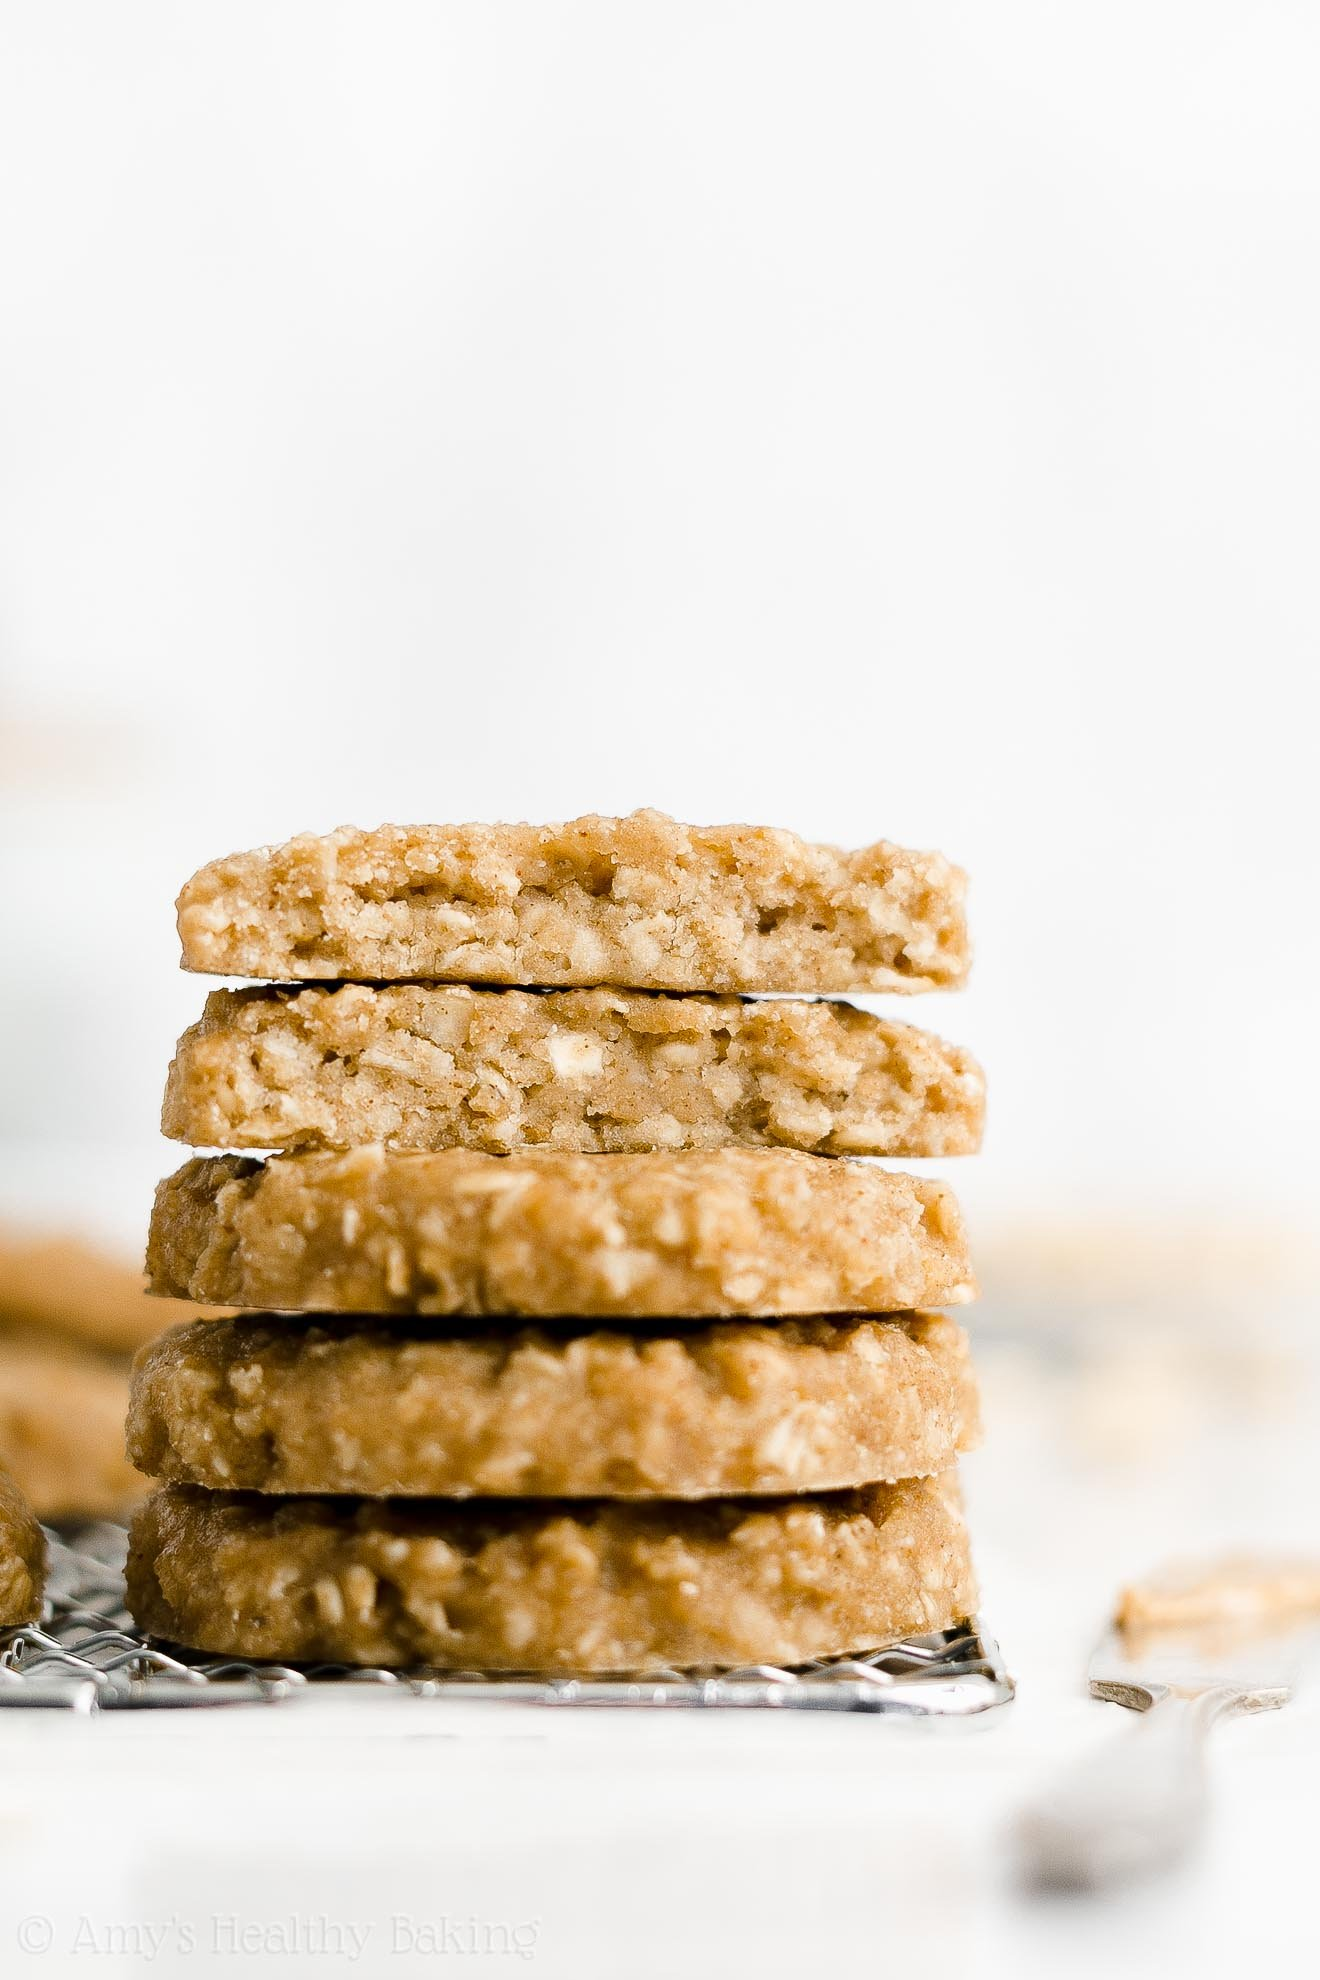 Best Easy Healthy Eggless Dairy Free Peanut Butter Oatmeal Breakfast Cookies